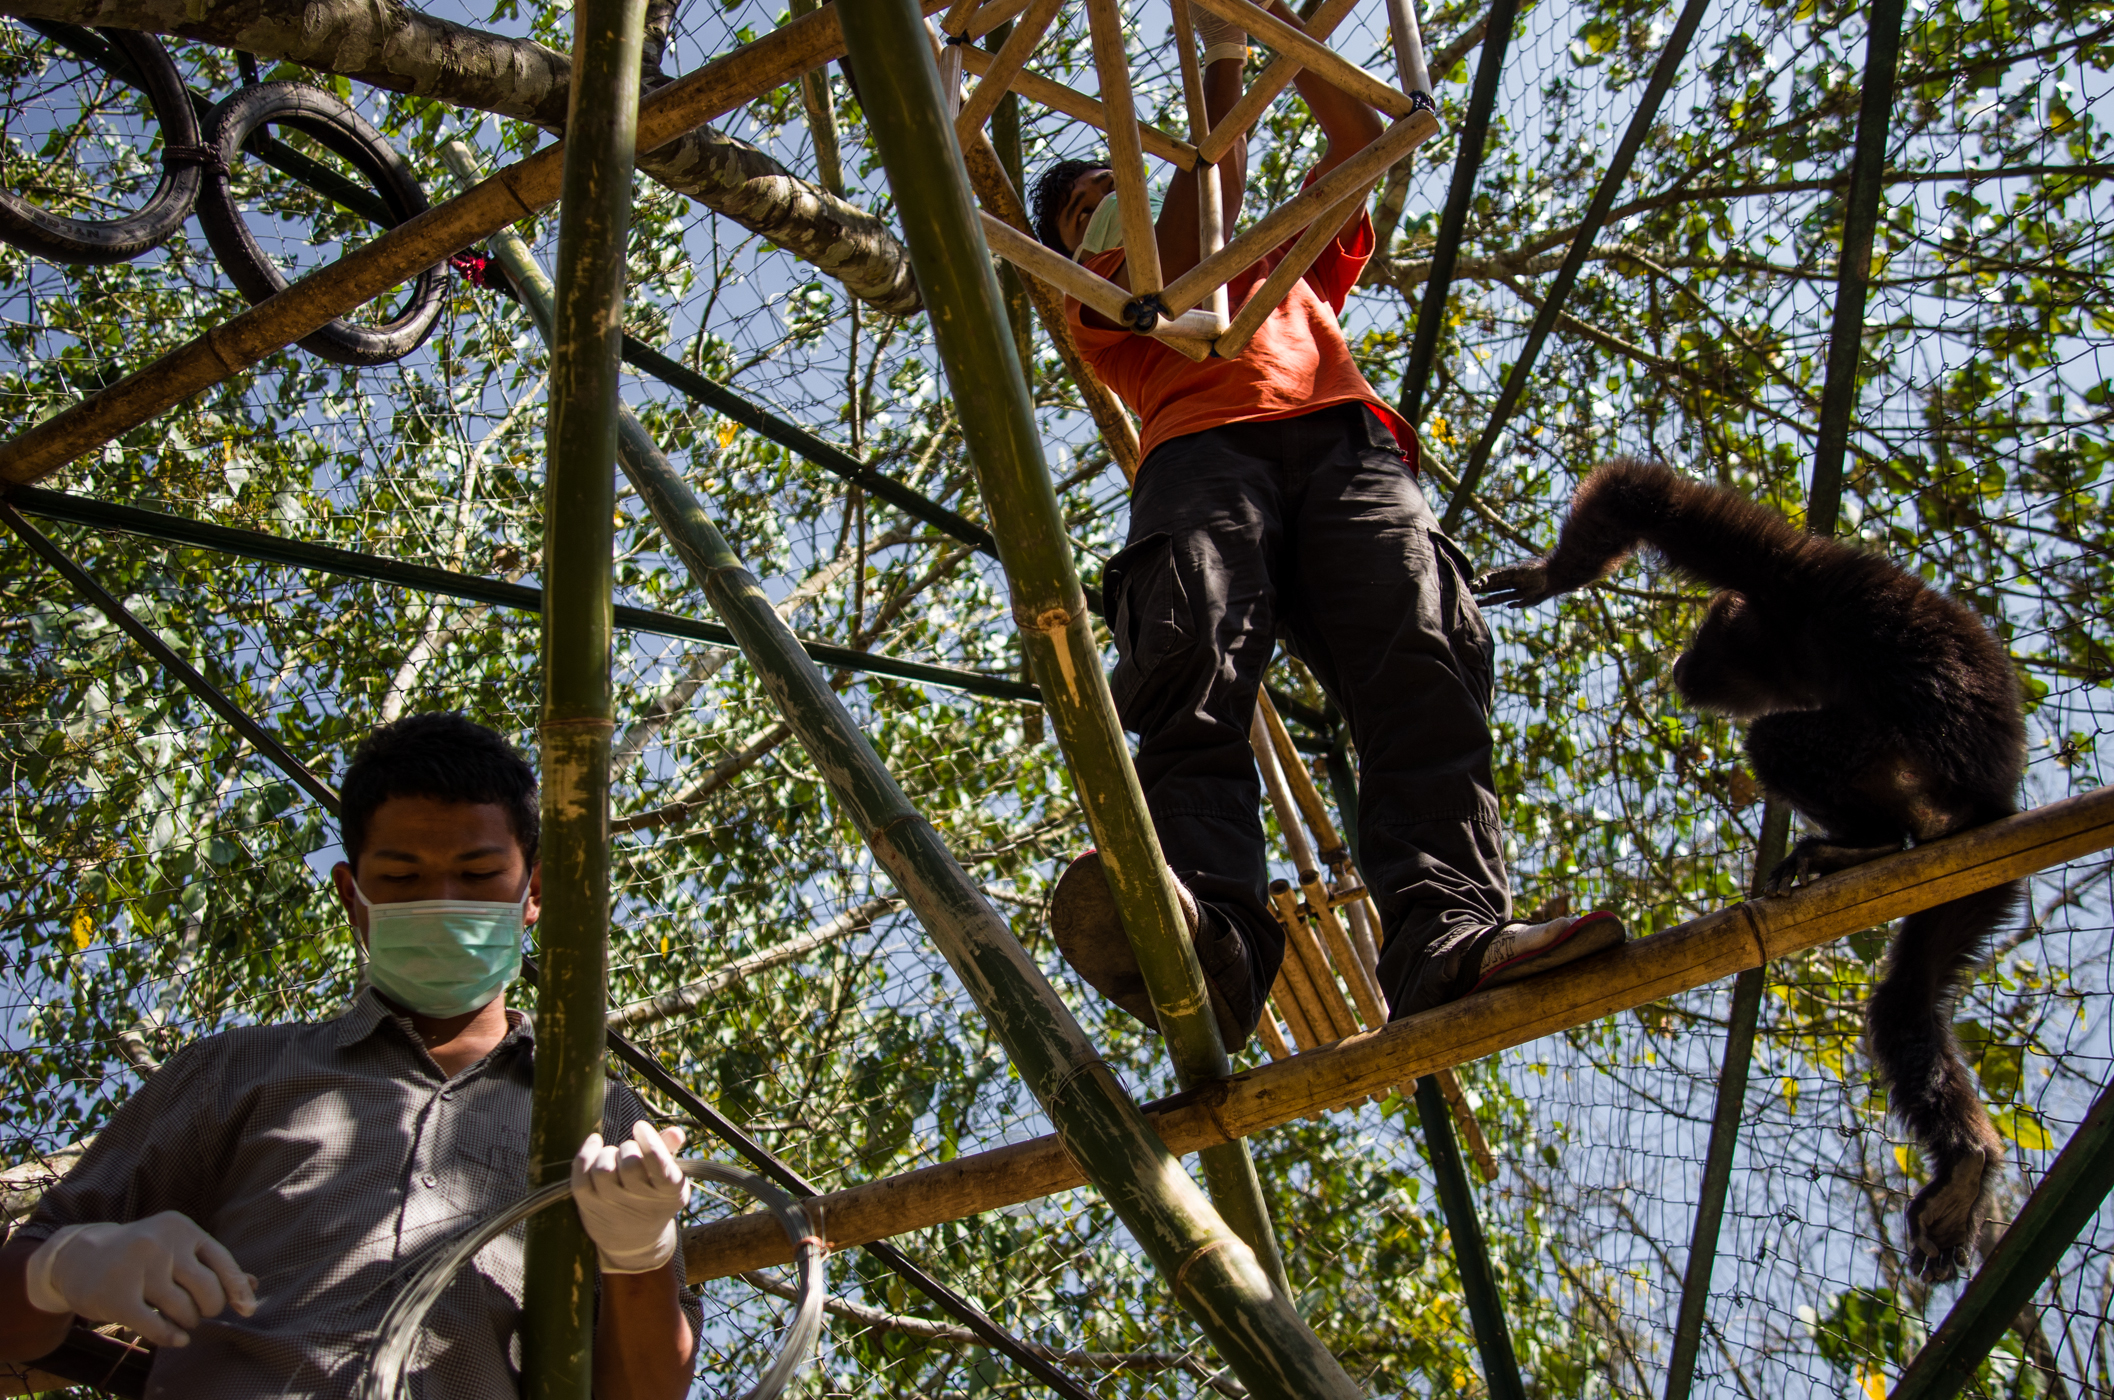 Sengrang (left) and Tangrik repair a bamboo swing in Biang and Emeraude's enclosure.